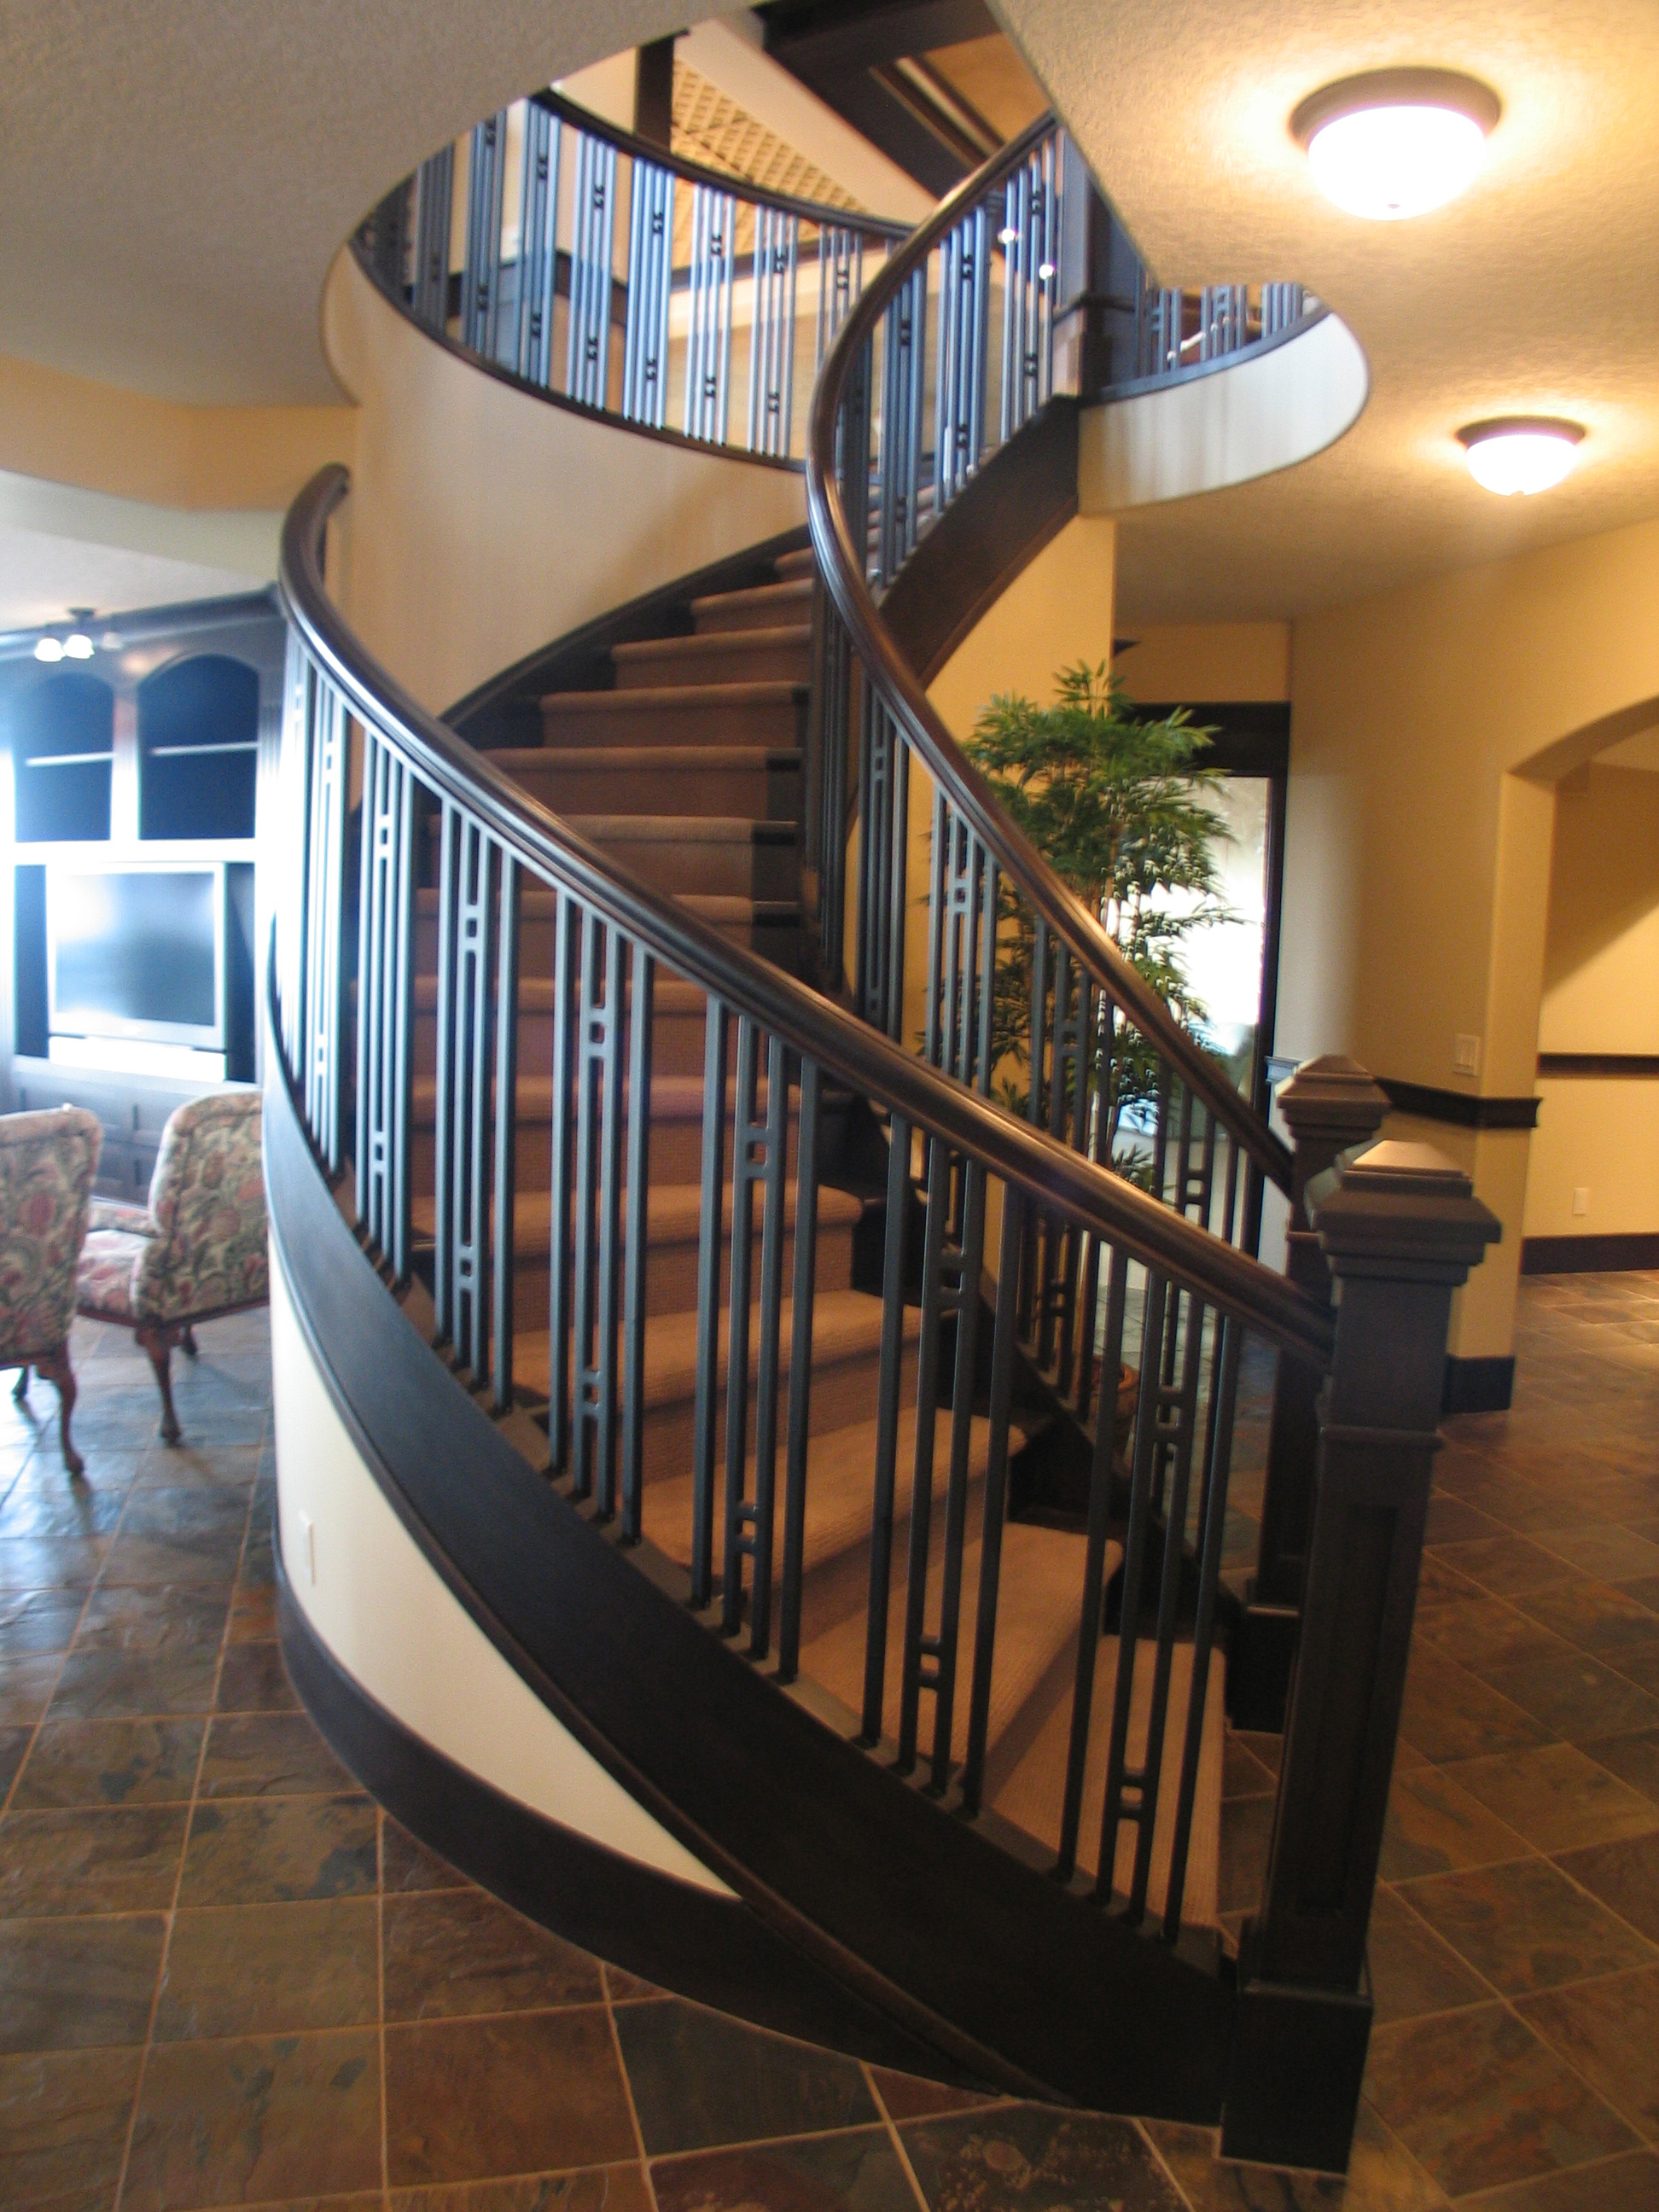 Wrought Iron Railings An Elegant Design Option Artistic